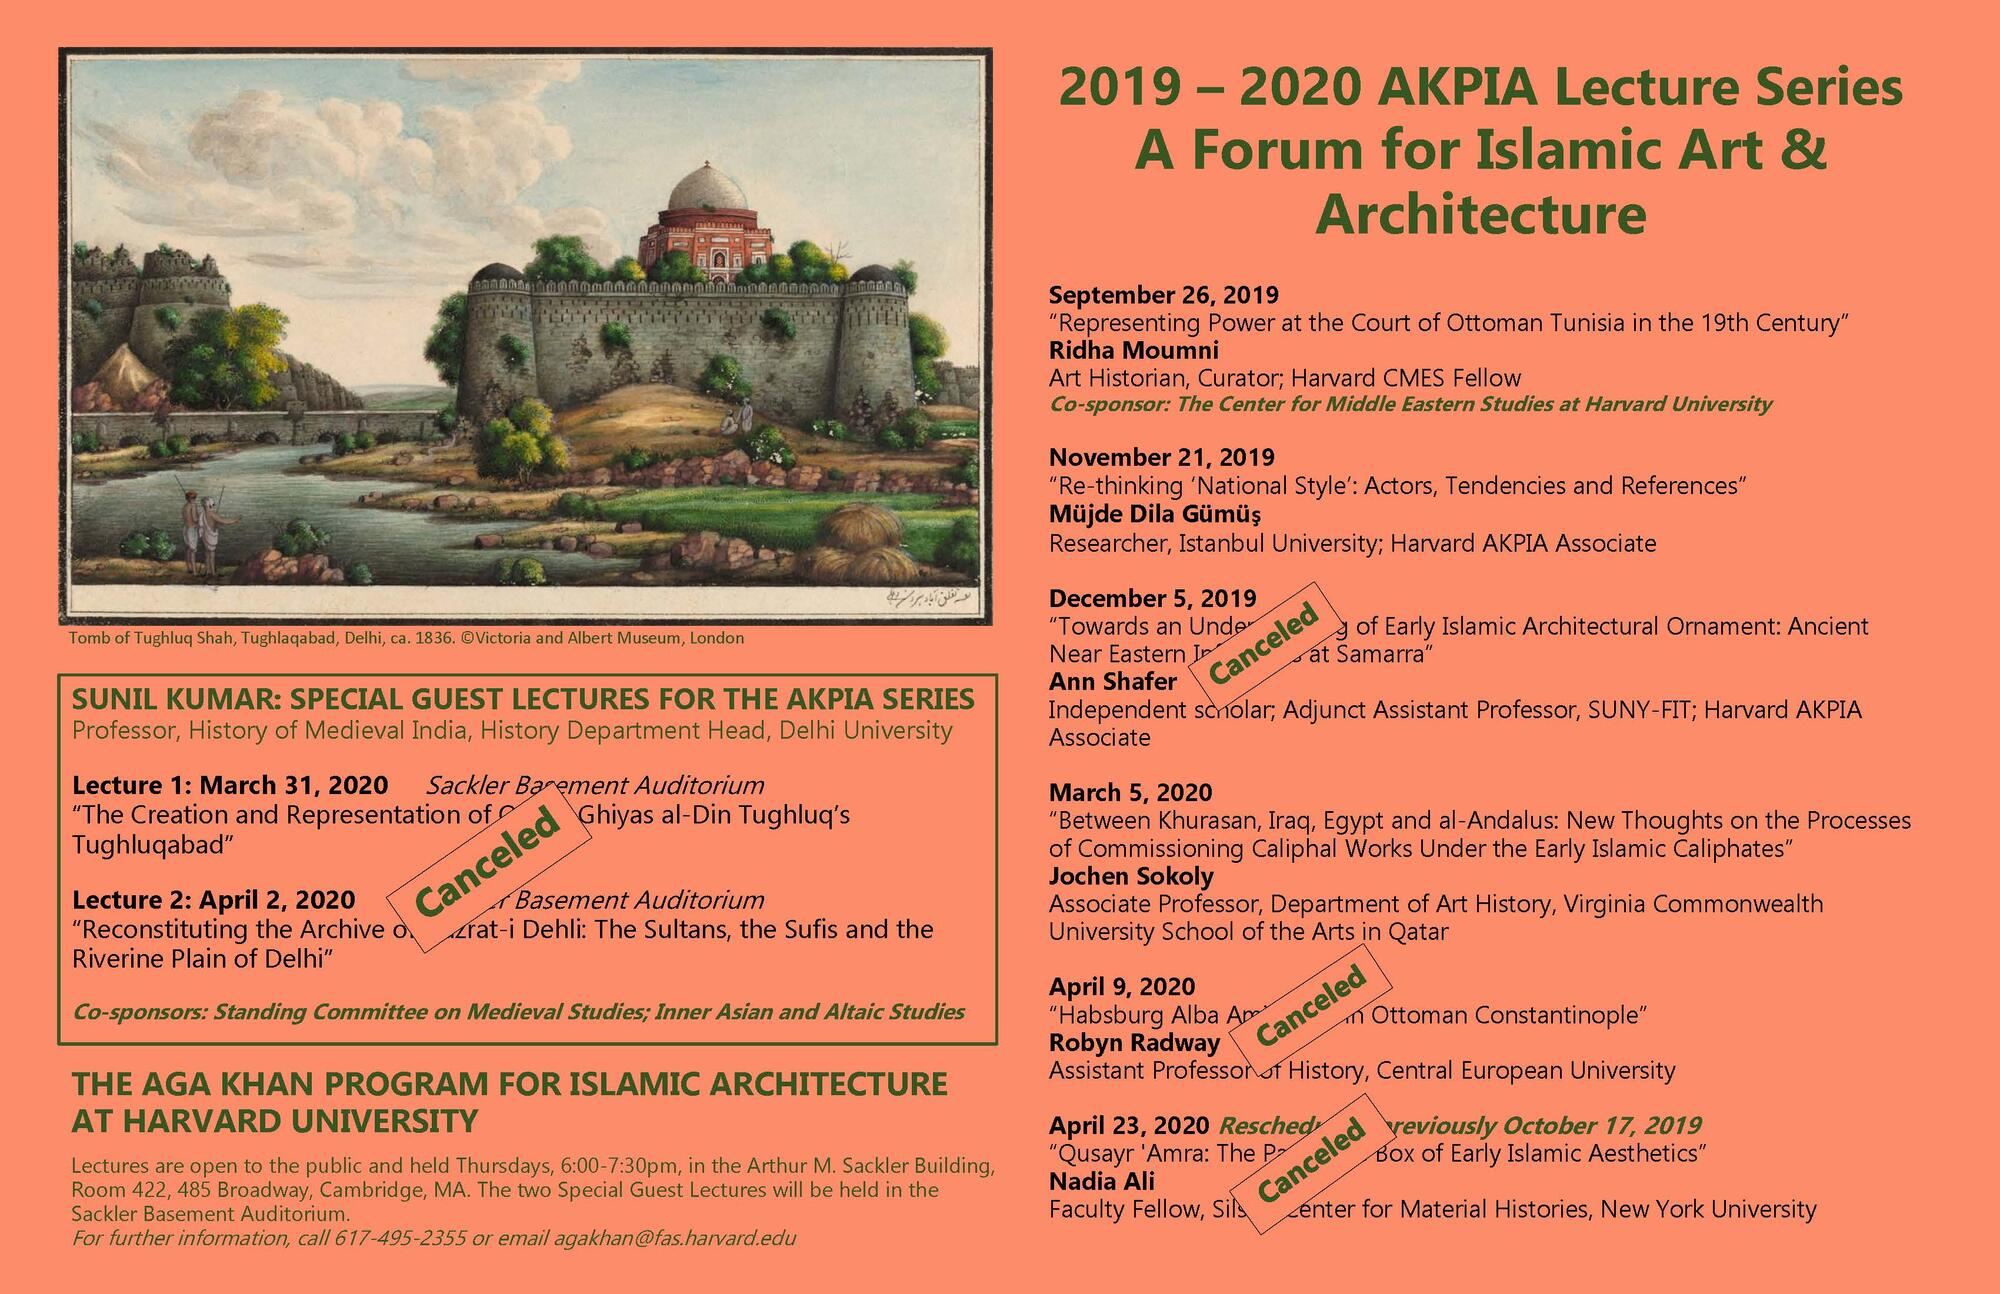 akpia lecture poster 2019 20 final